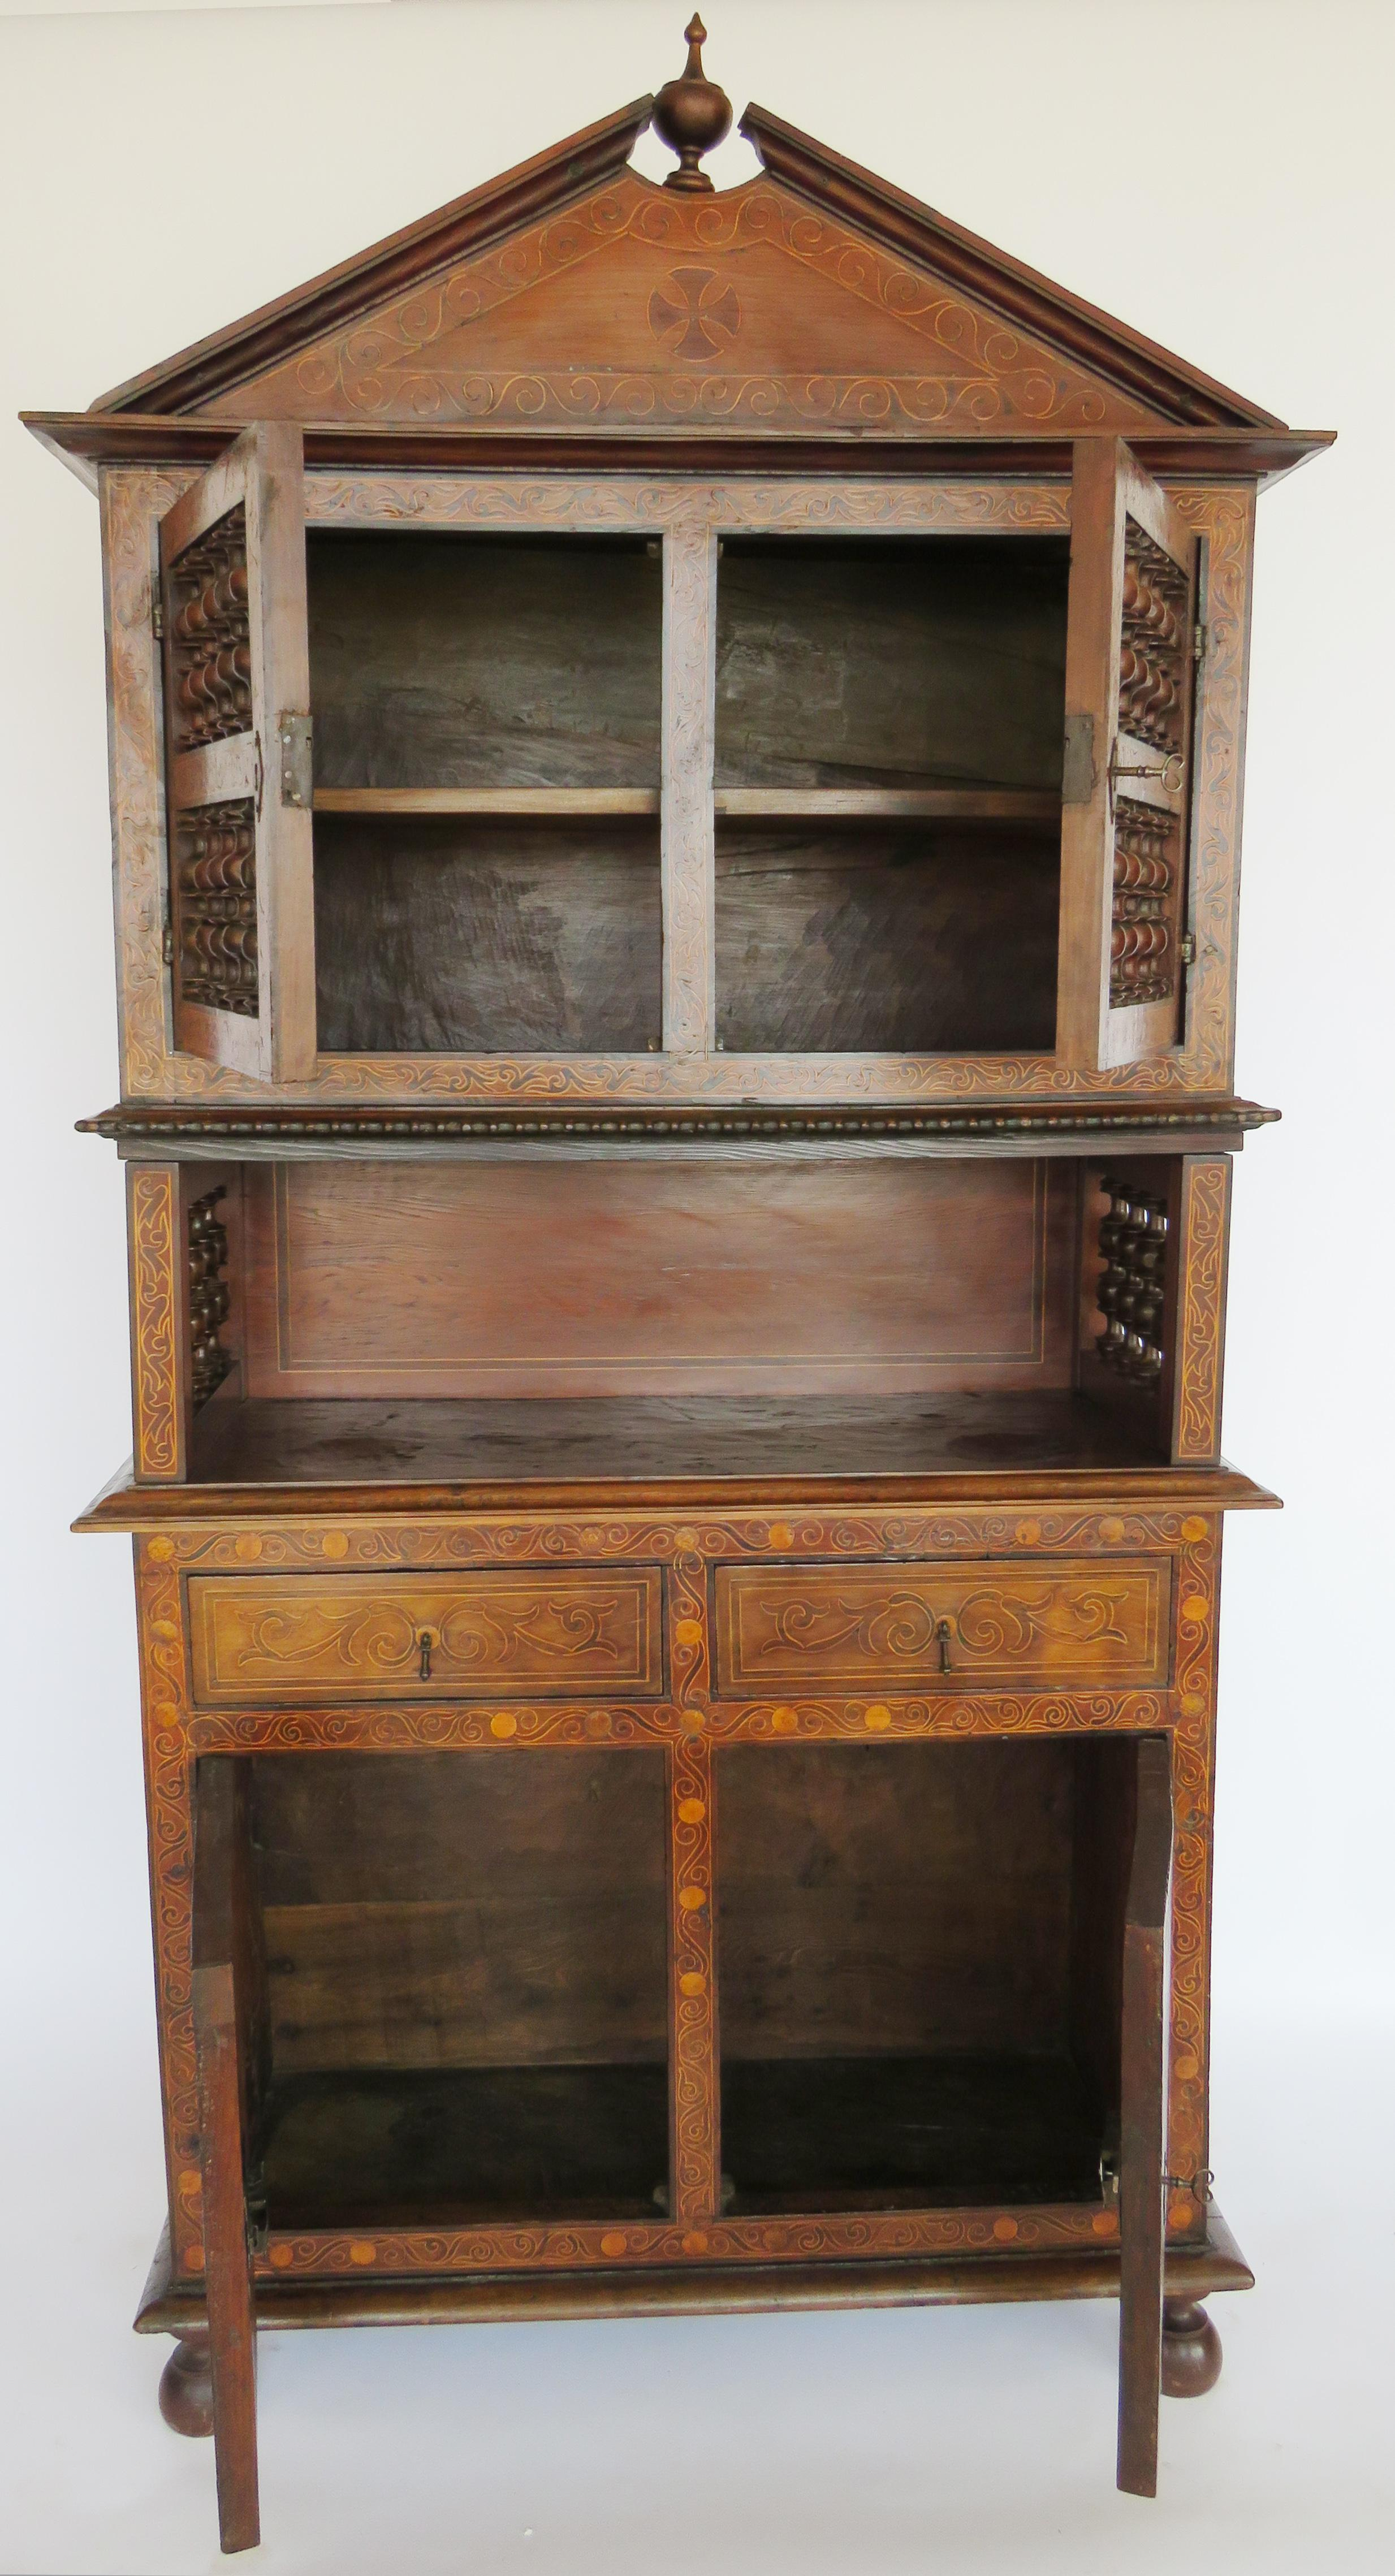 Three Storied Lemon Inlaid Marquetry Cabinet. Upper Storey Has A Peaked  Pediment Over Double Doors